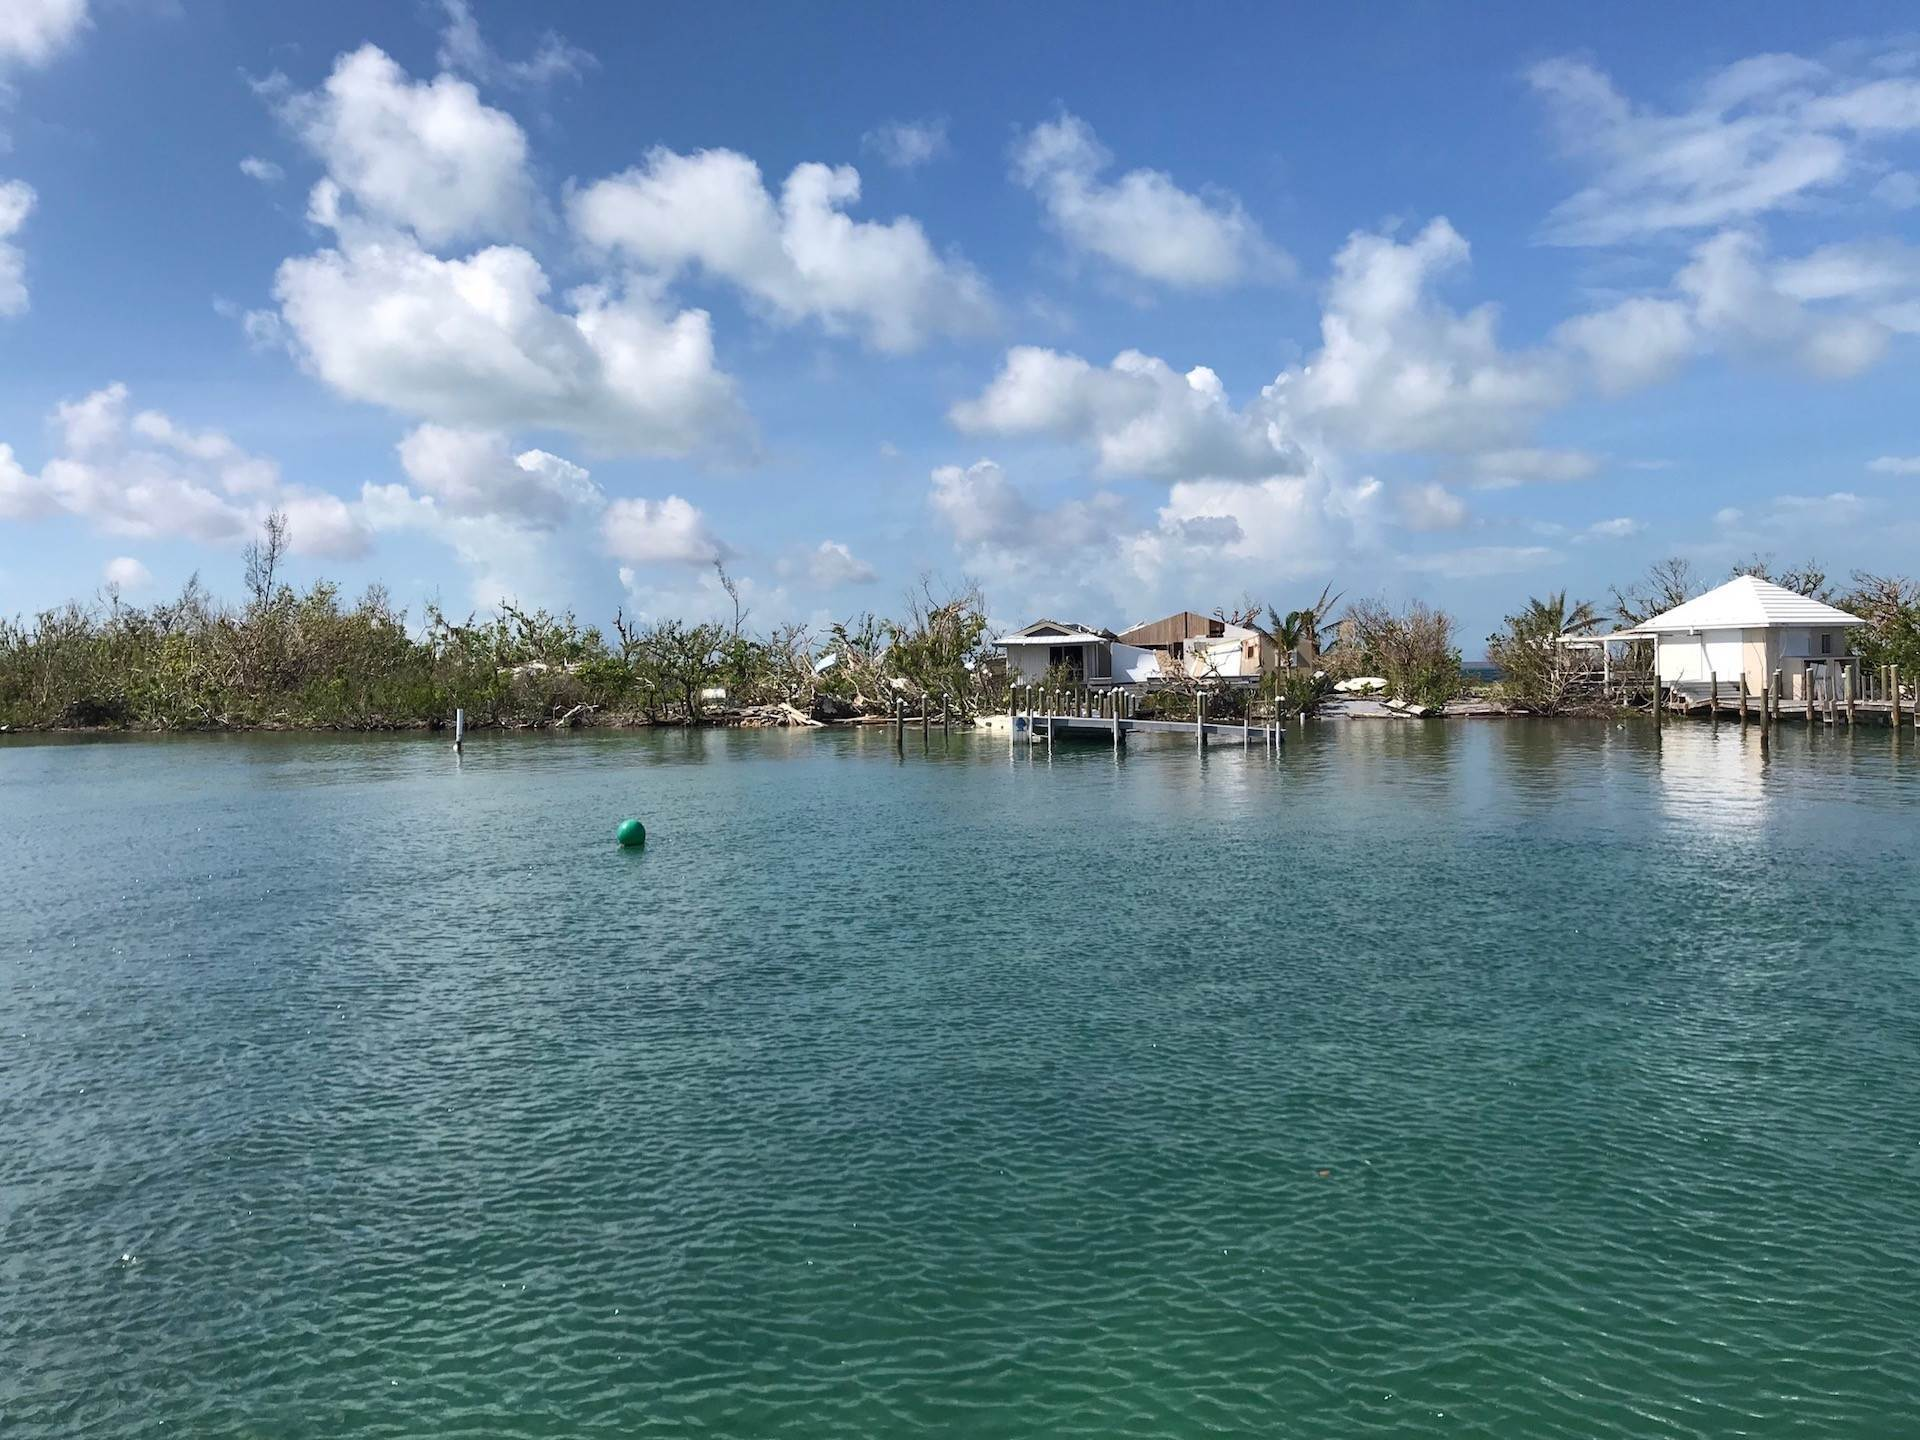 5. Land / Lots for Sale at Deck House Property - MLS 43732 Green Turtle Cay, Abaco, Bahamas